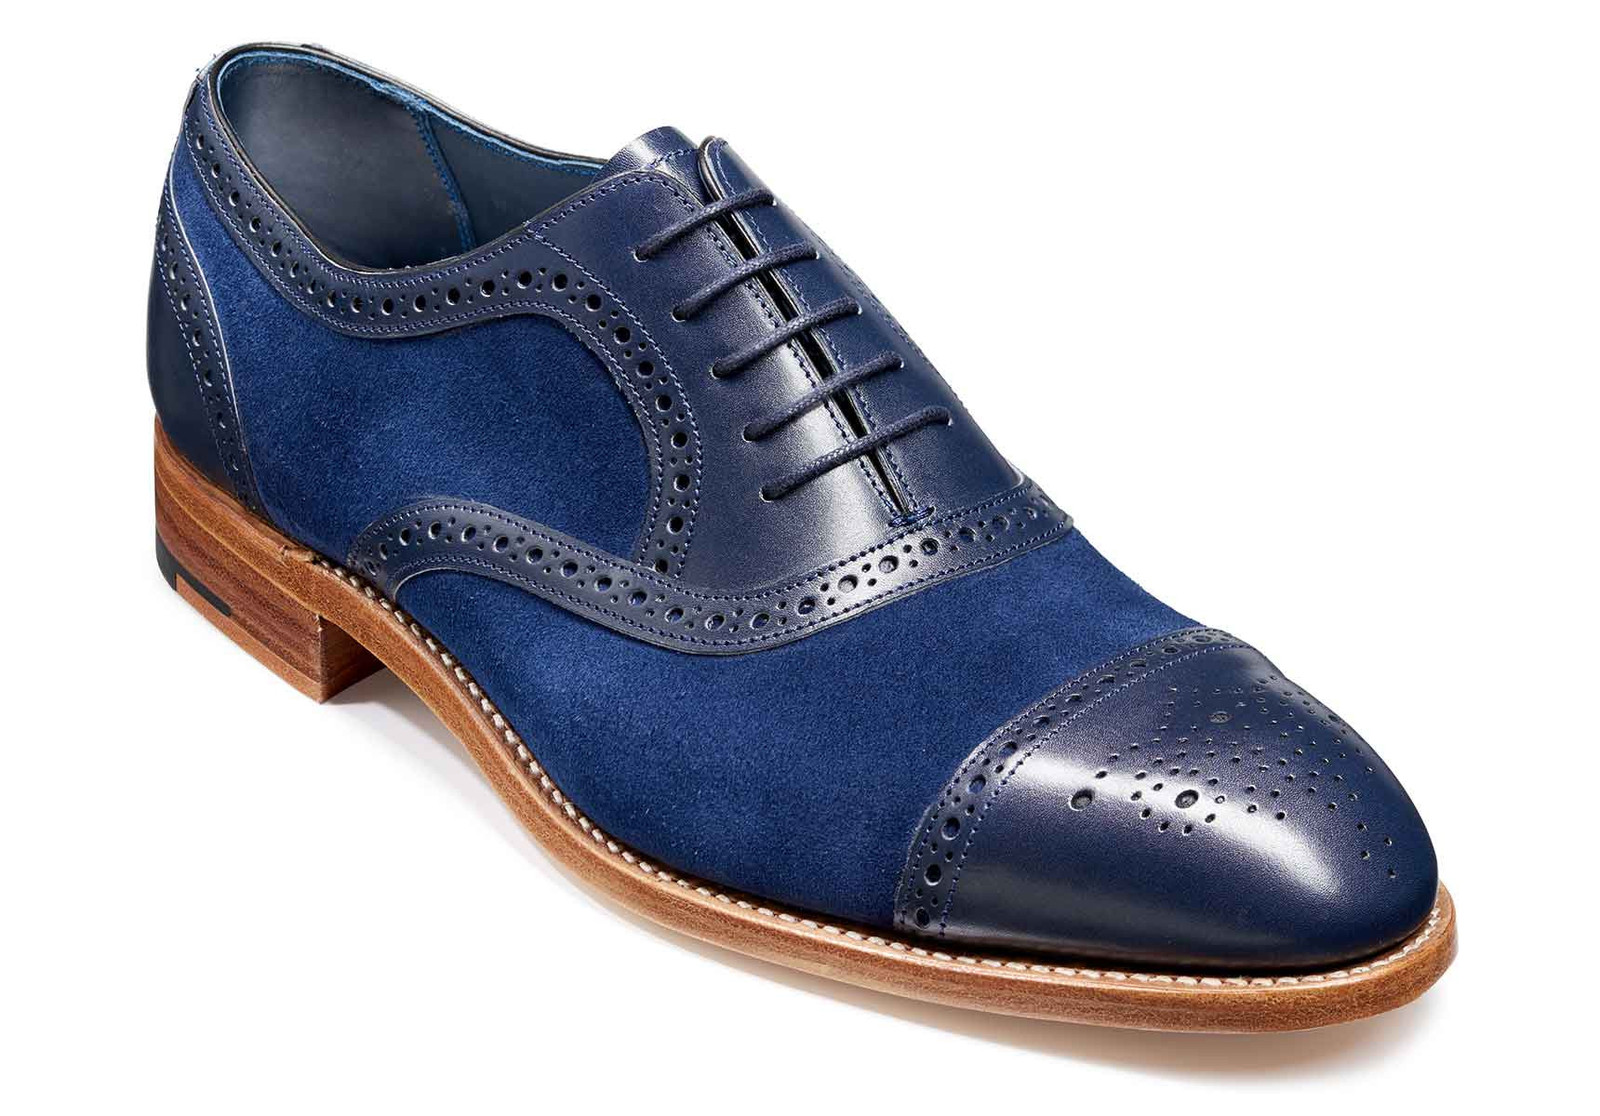 Handmade Men's Blue Suede & Leather Heart Medallion Oxford Shoes